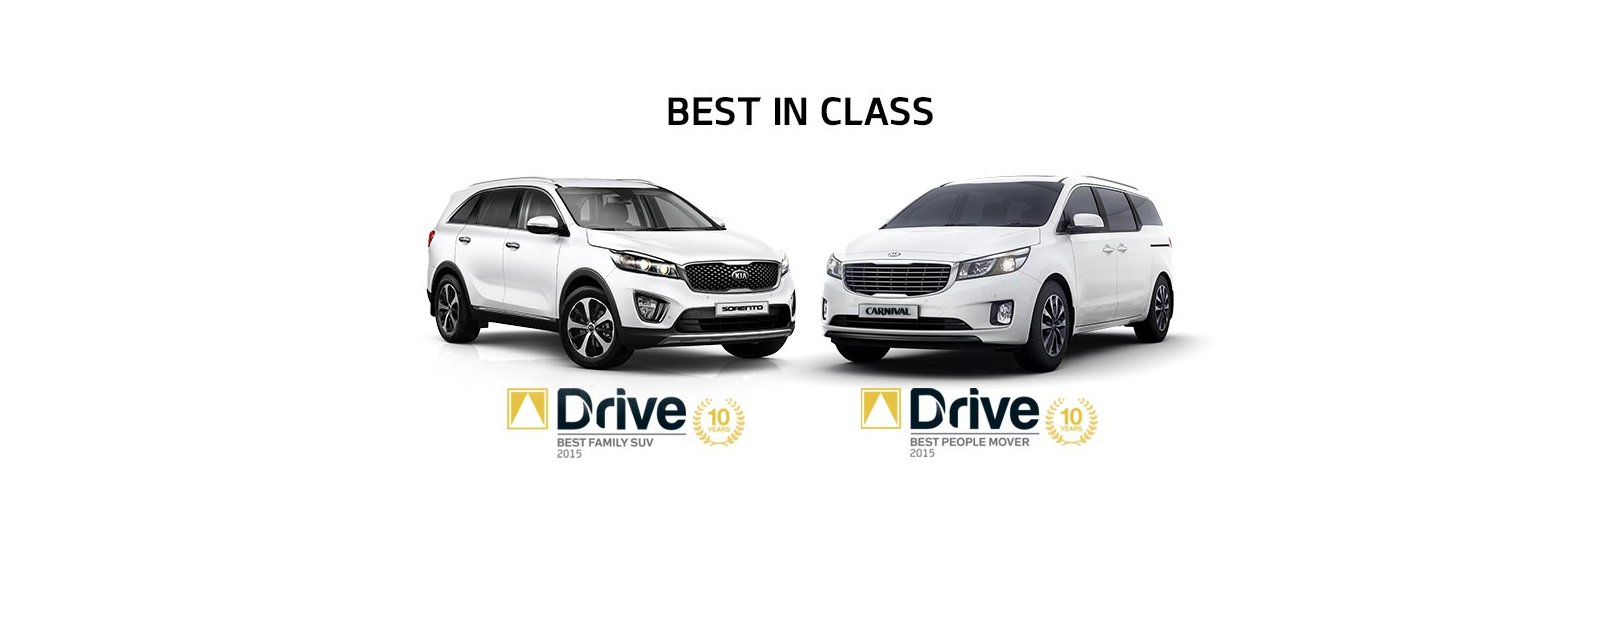 Best in class 2016. Kia Sorento, Drive Best Family SUV 2015 and Kia Carnival, Drive Best People Mover 2015.